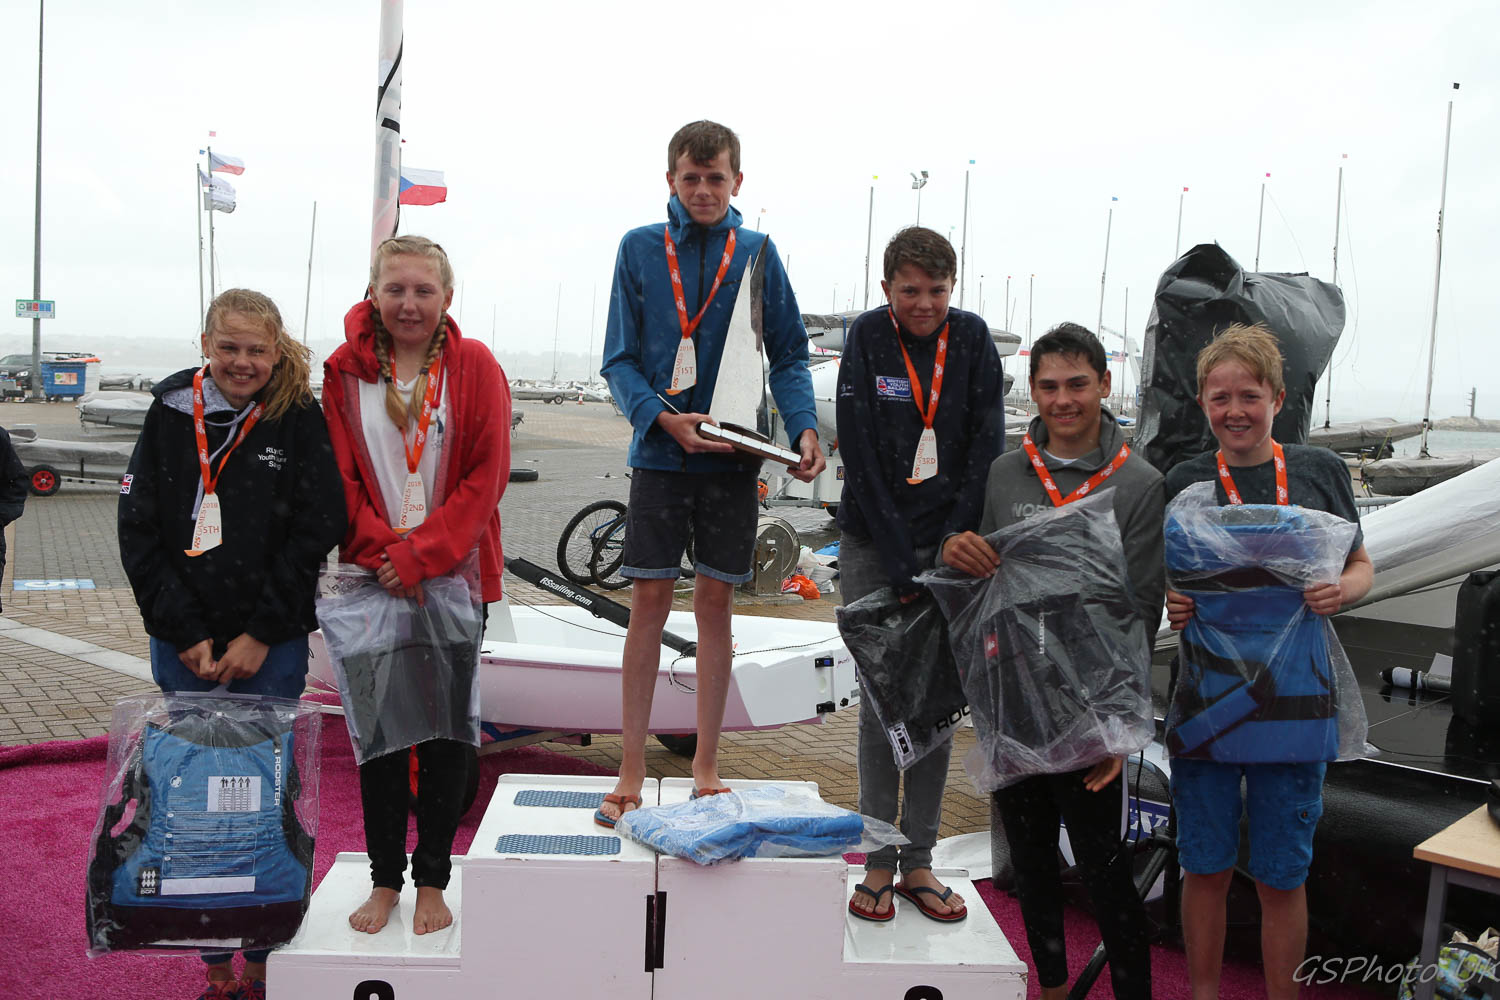 Beth Miller Sailing, 2nd overall, RS Tera Pro Worlds 2018